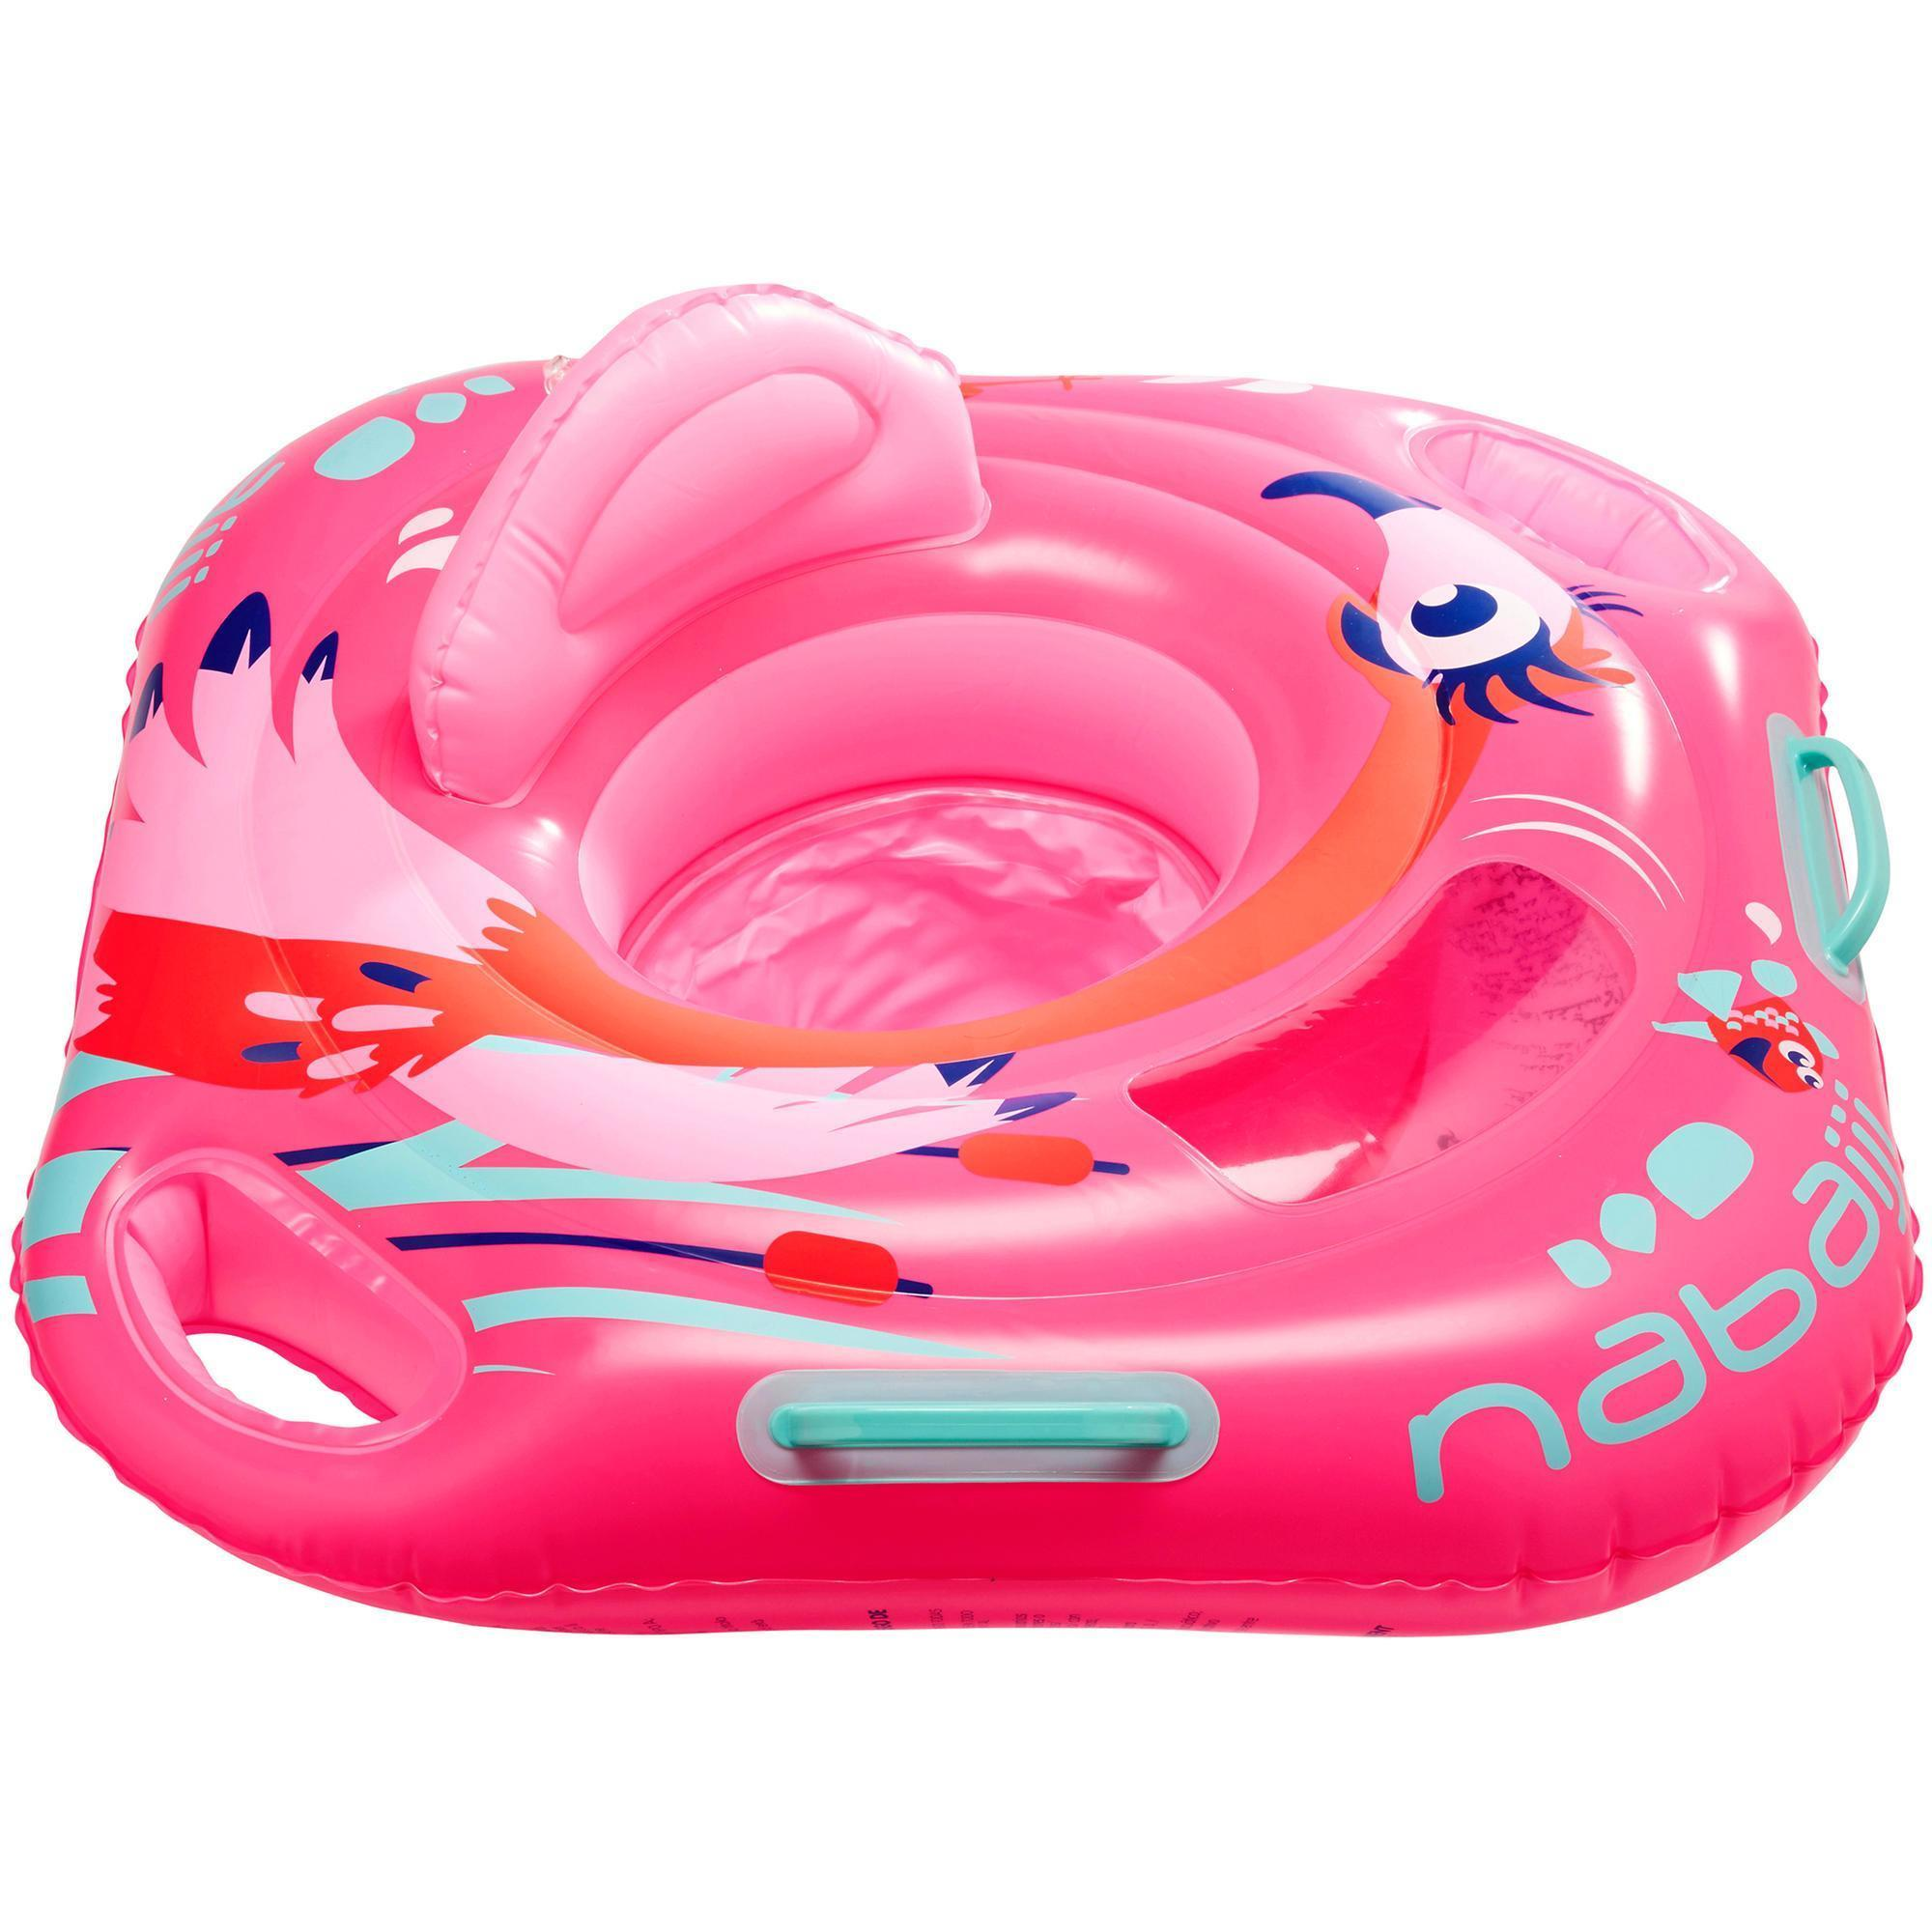 Baby Seat Swim Ring with Window and Handles - Flamingo | Nabaiji